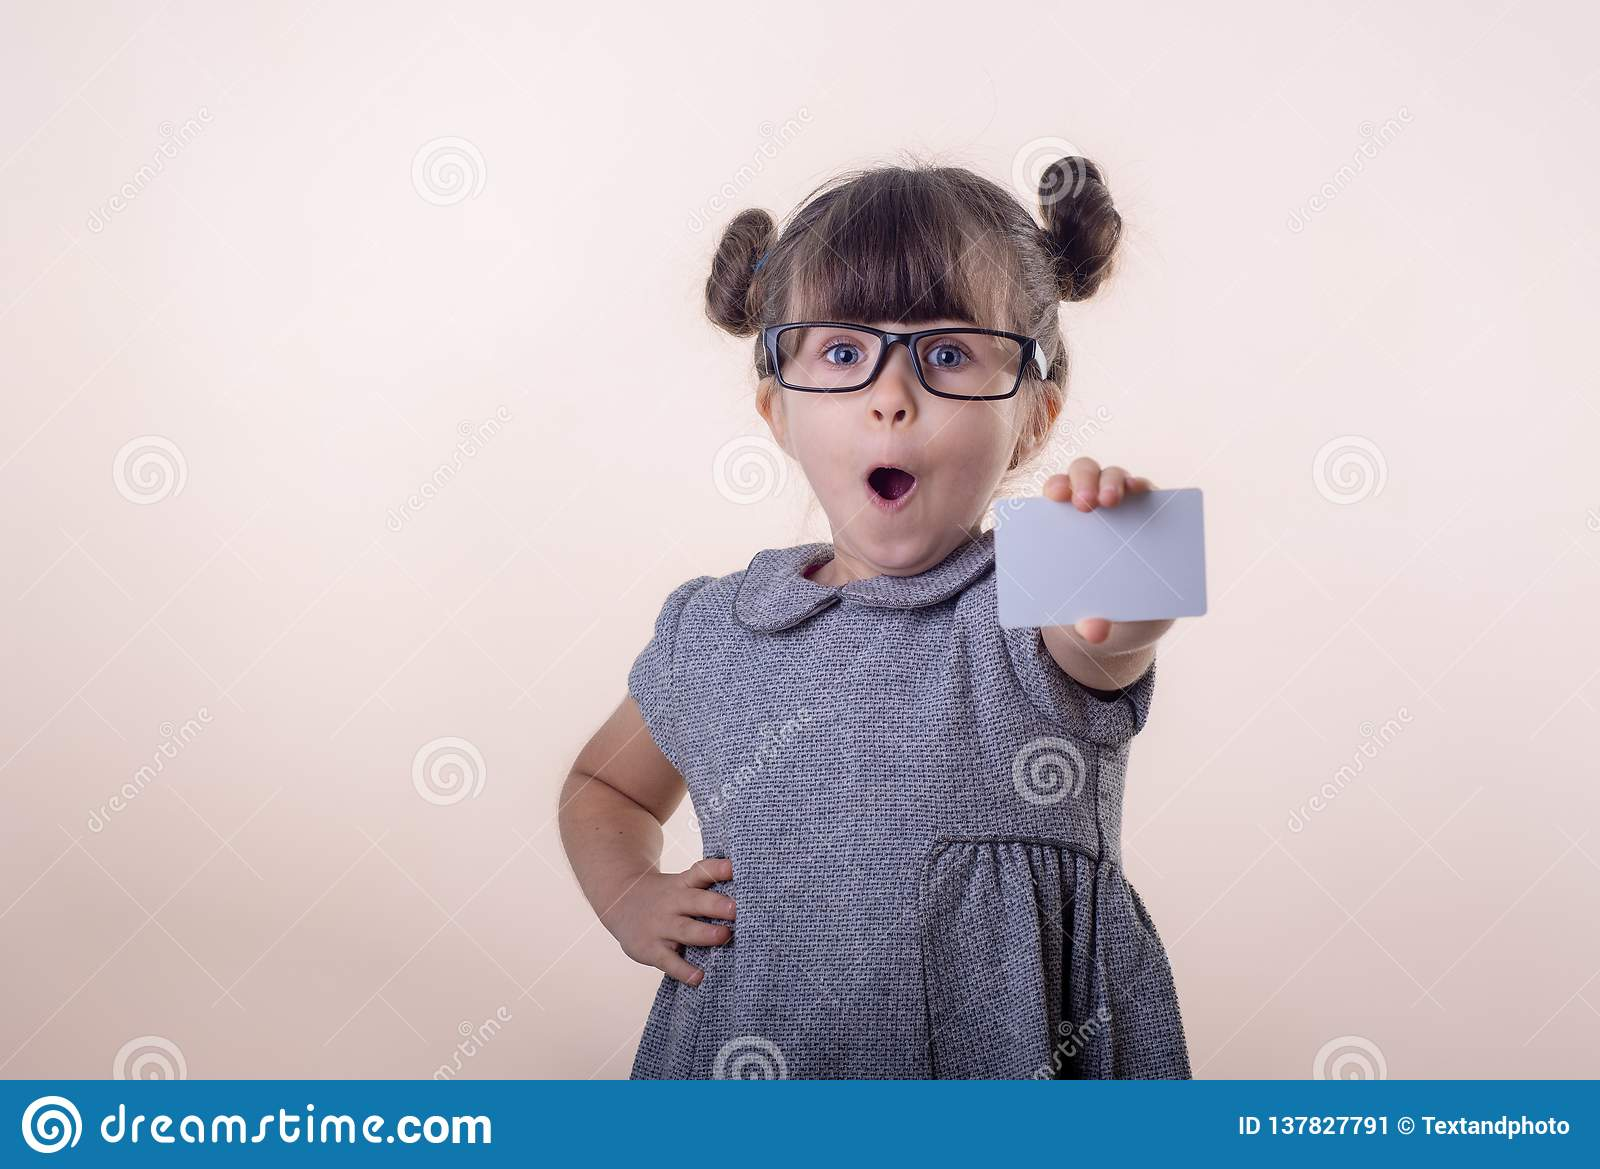 Cute smiling child with glasses holding bank card in her hands.